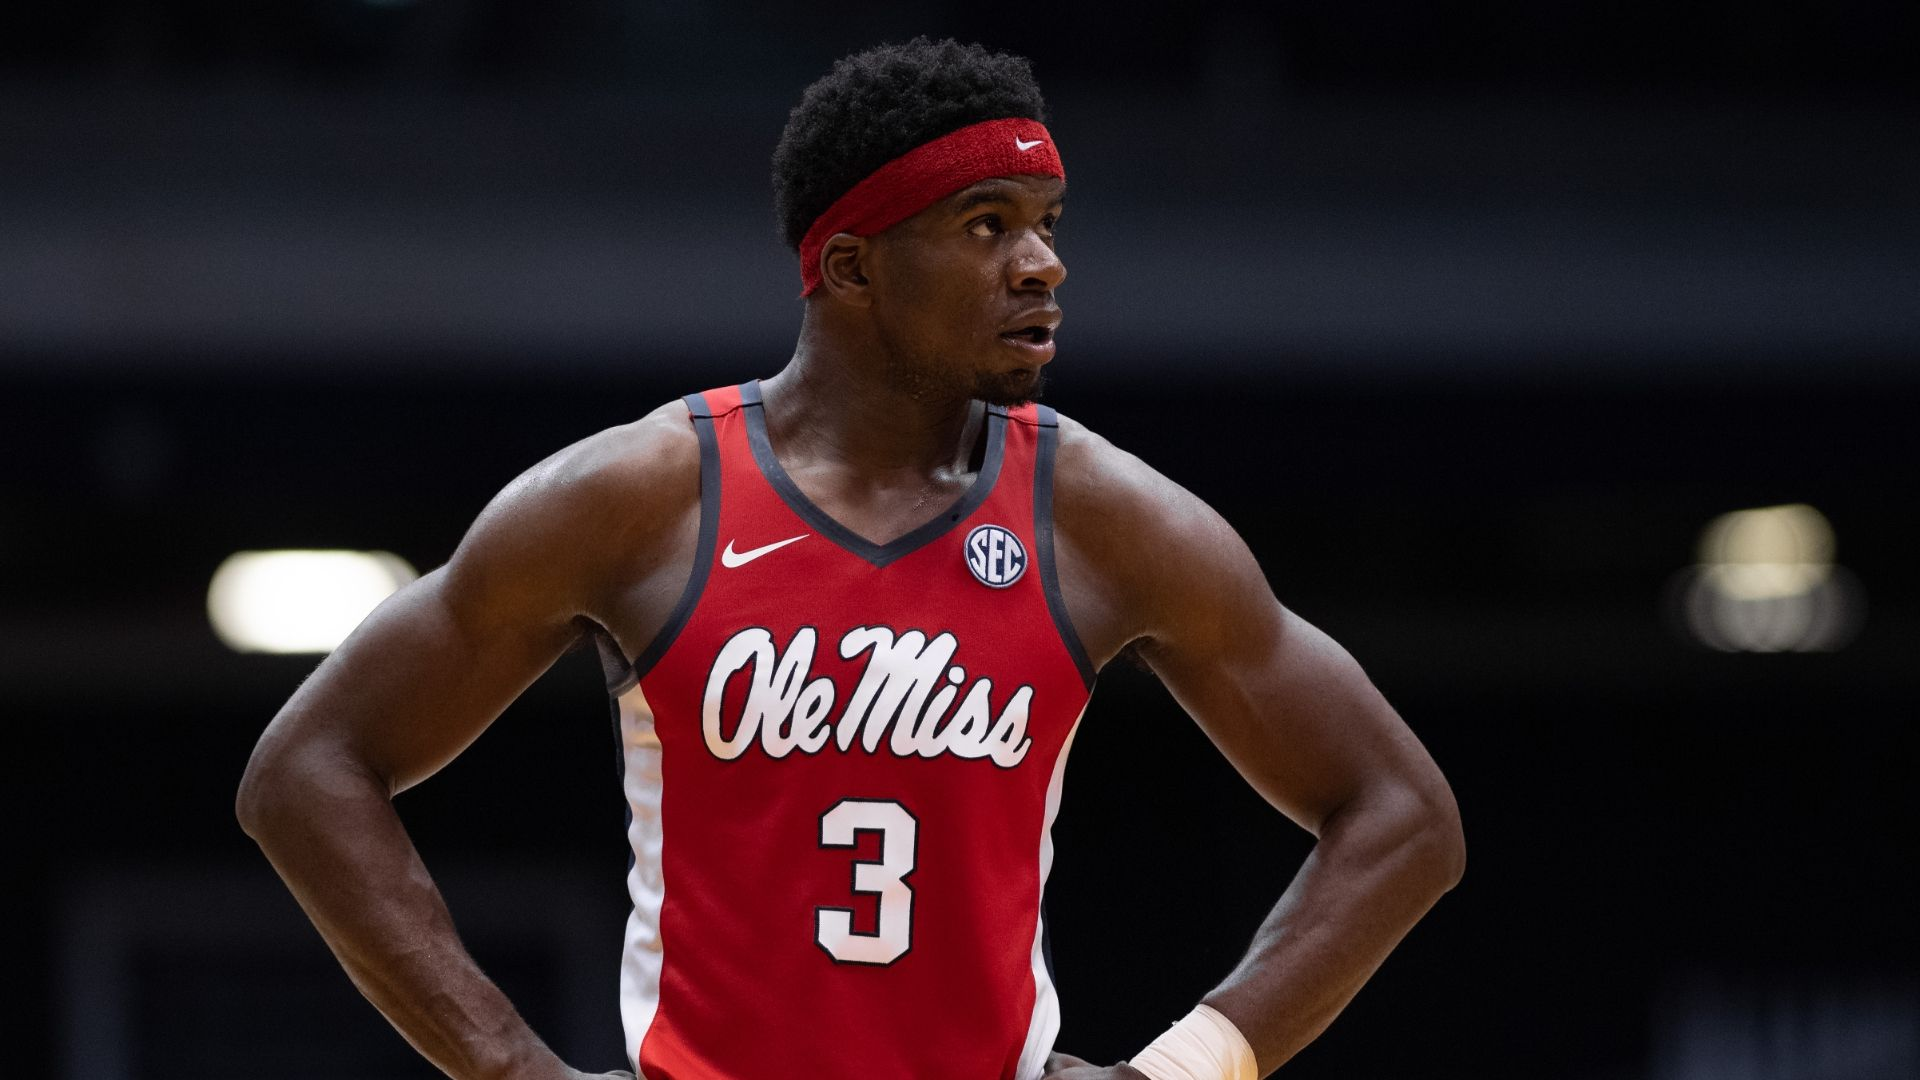 NBA draft profile: Terence Davis